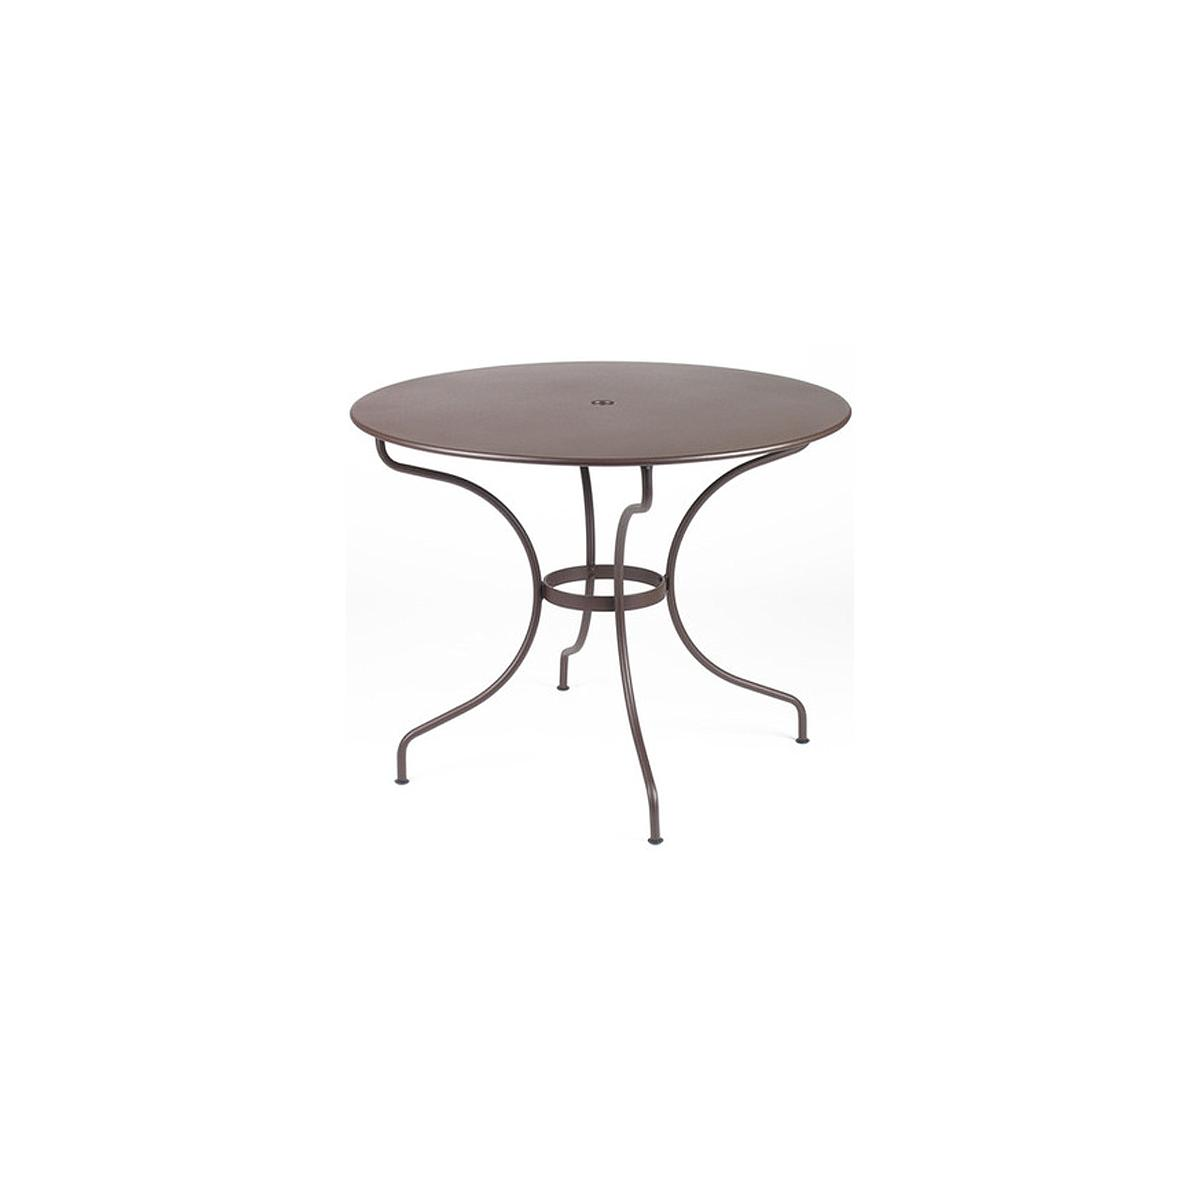 OPERA by Fermob Table ronde 96cm Brun rouille